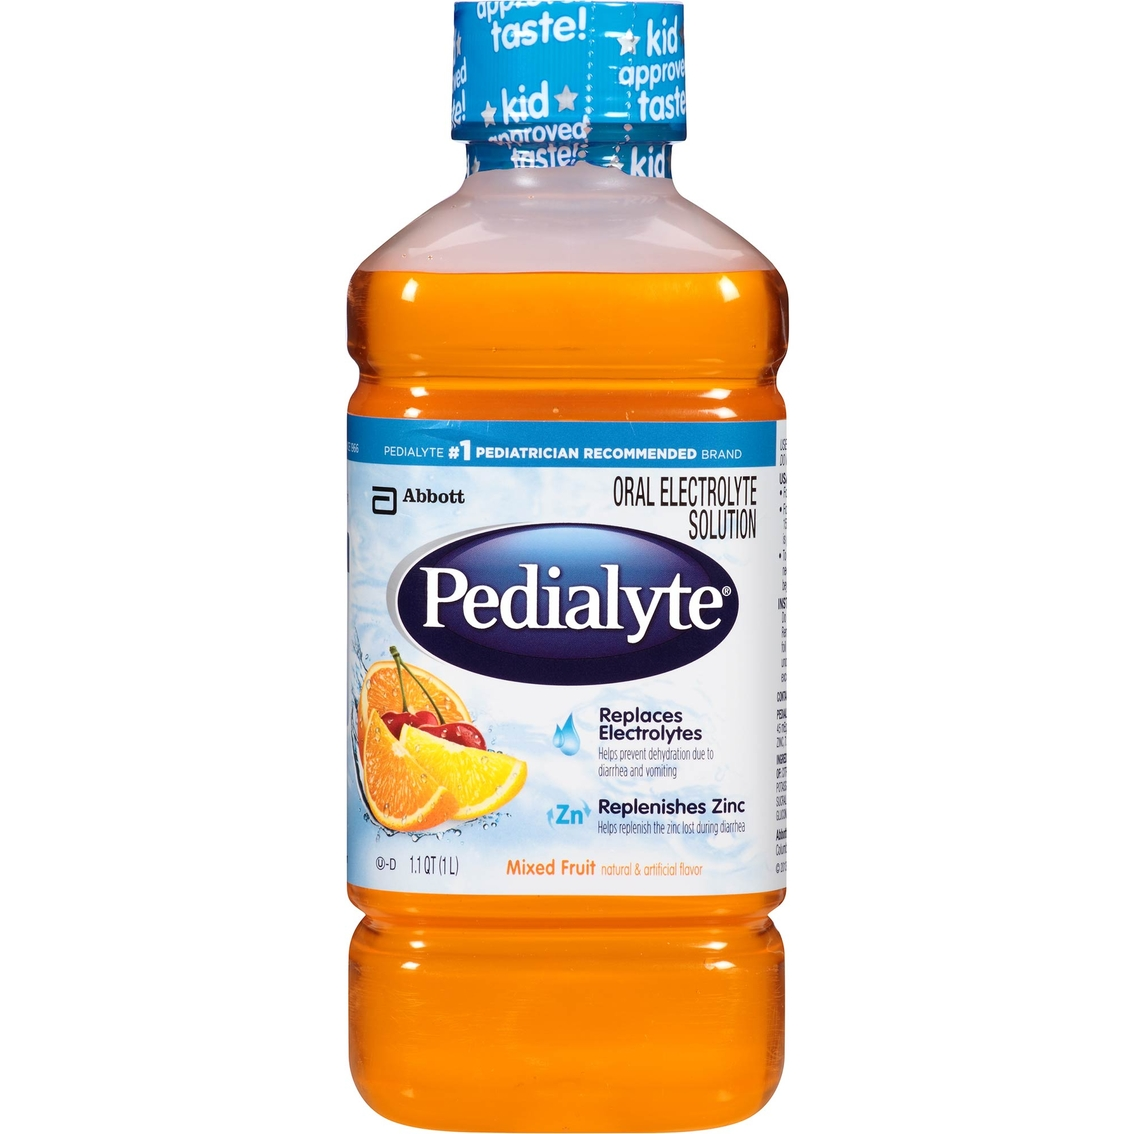 Pedialyte 1 1 Qt Mixed Fruit Oral Electrolyte Solution